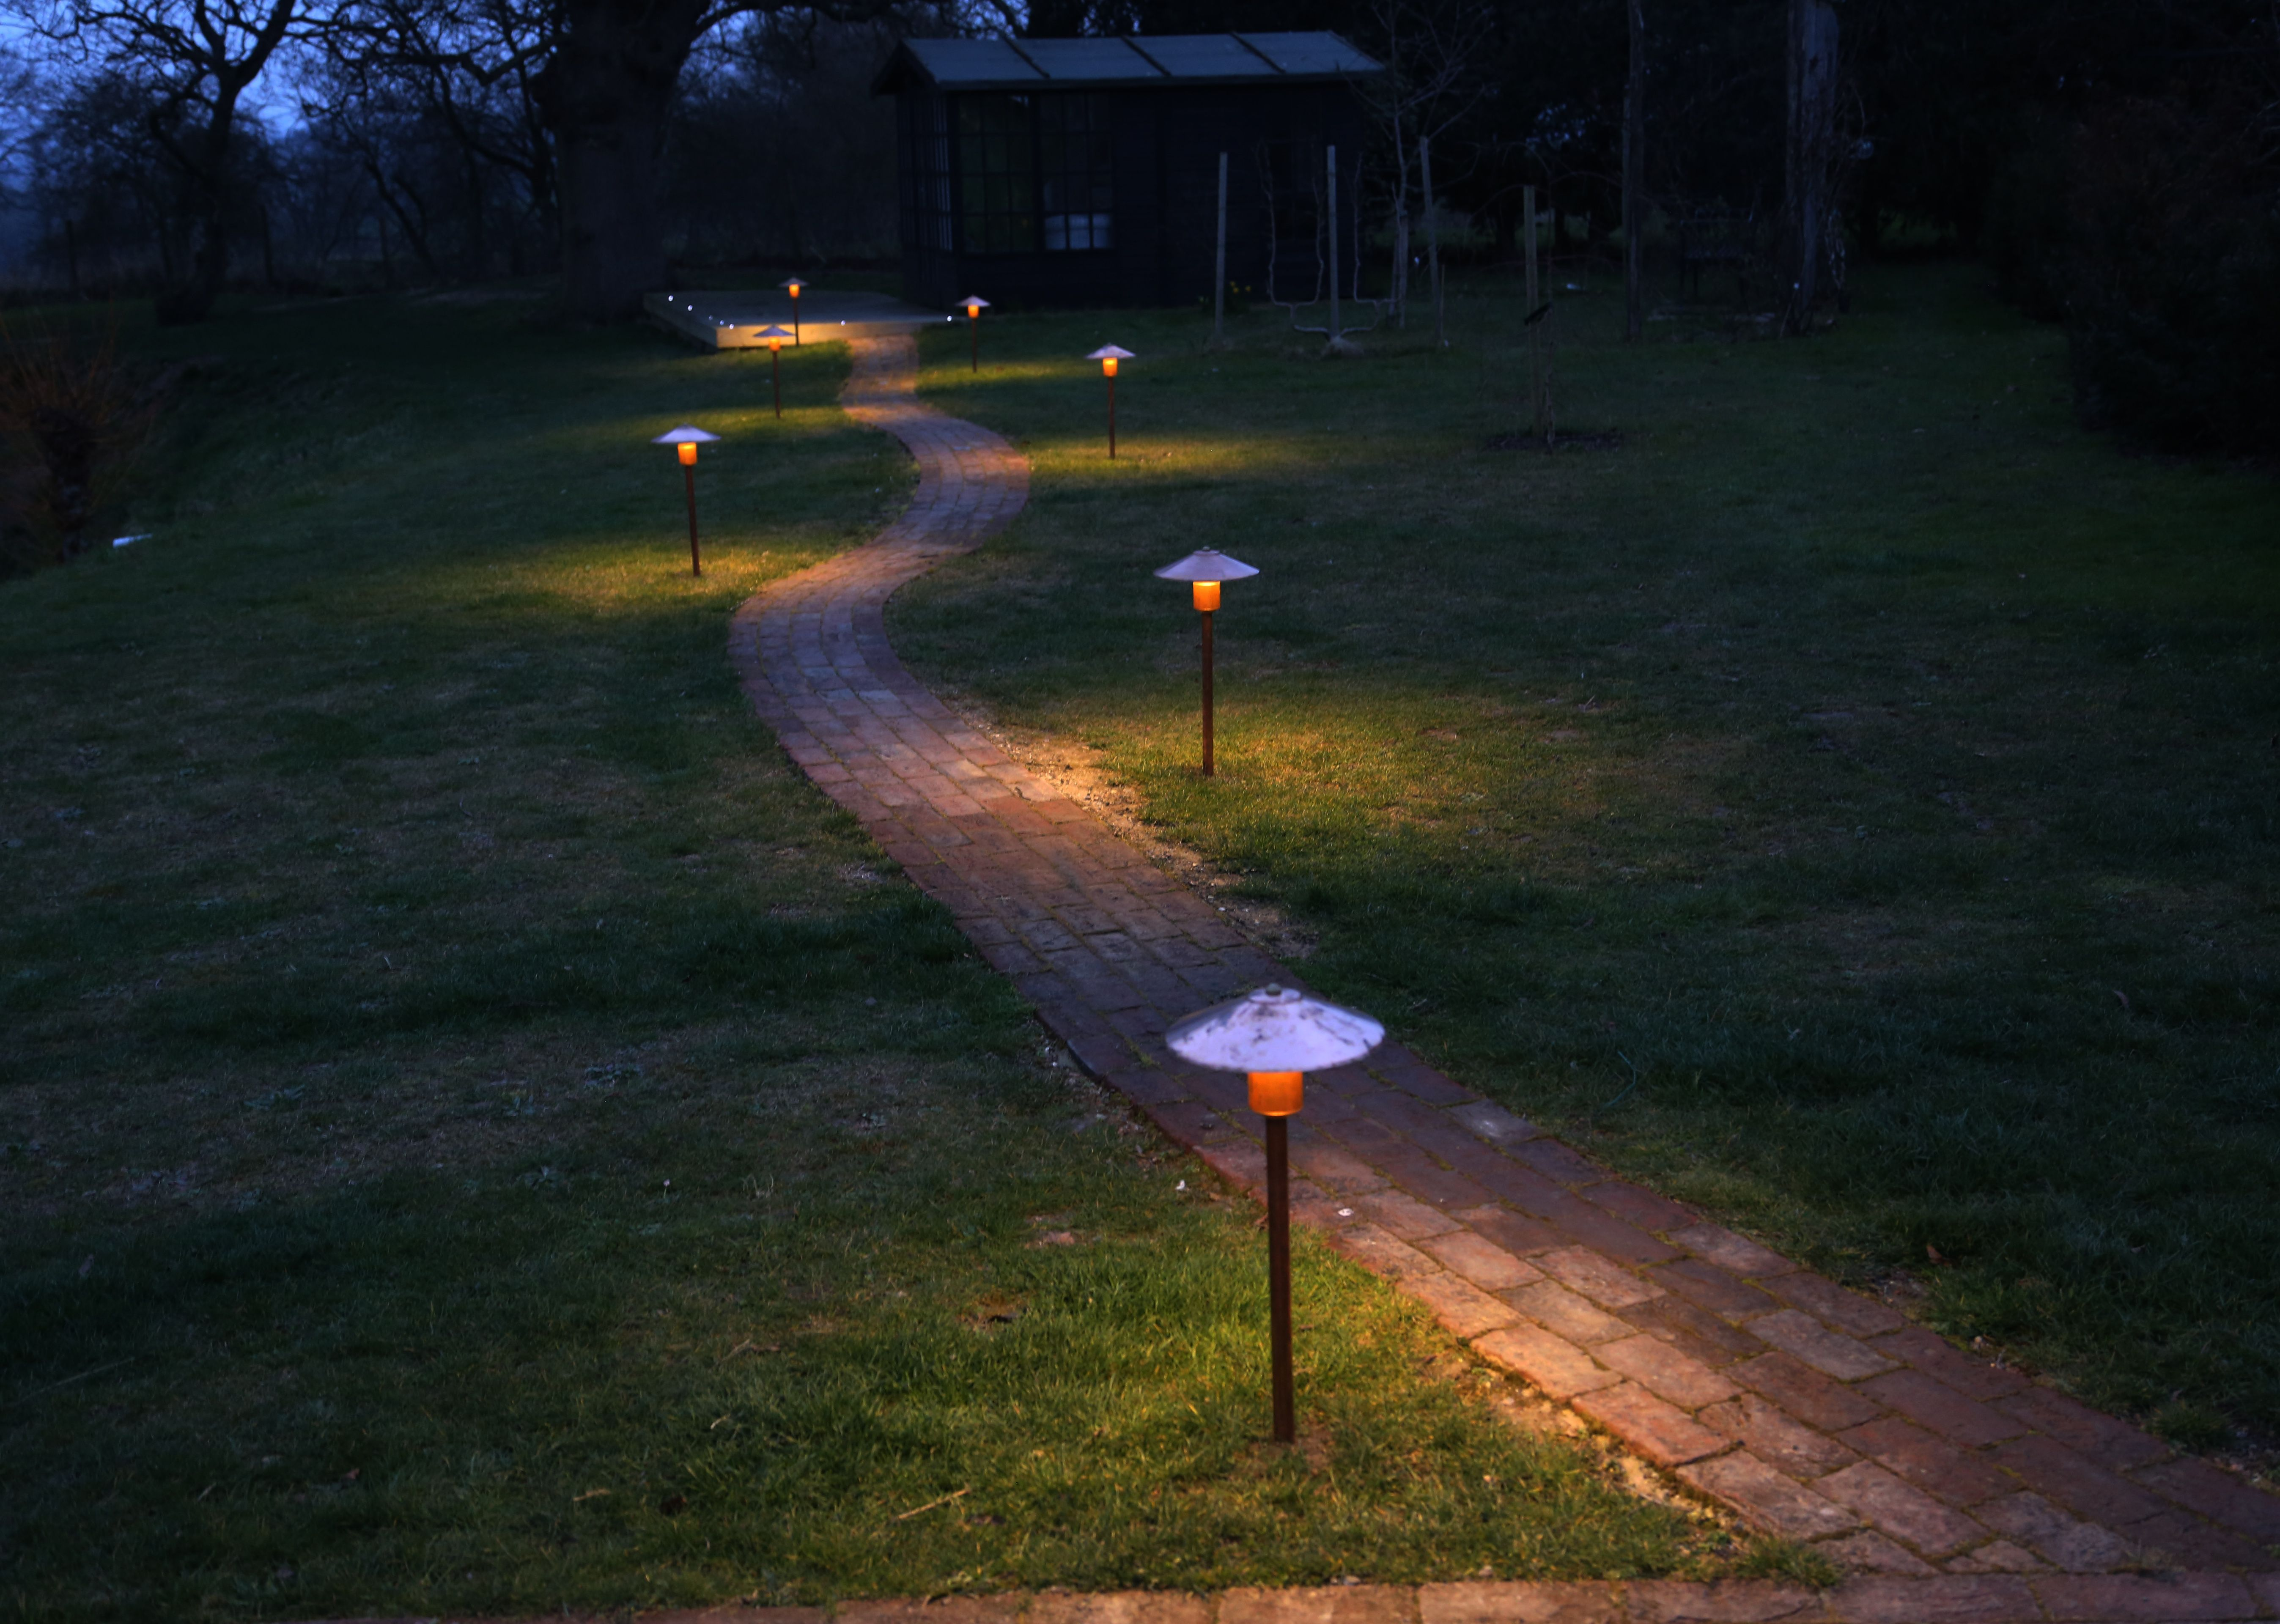 Hunza Solid Copper Tier Lights Were Used To Illuminate The Path To